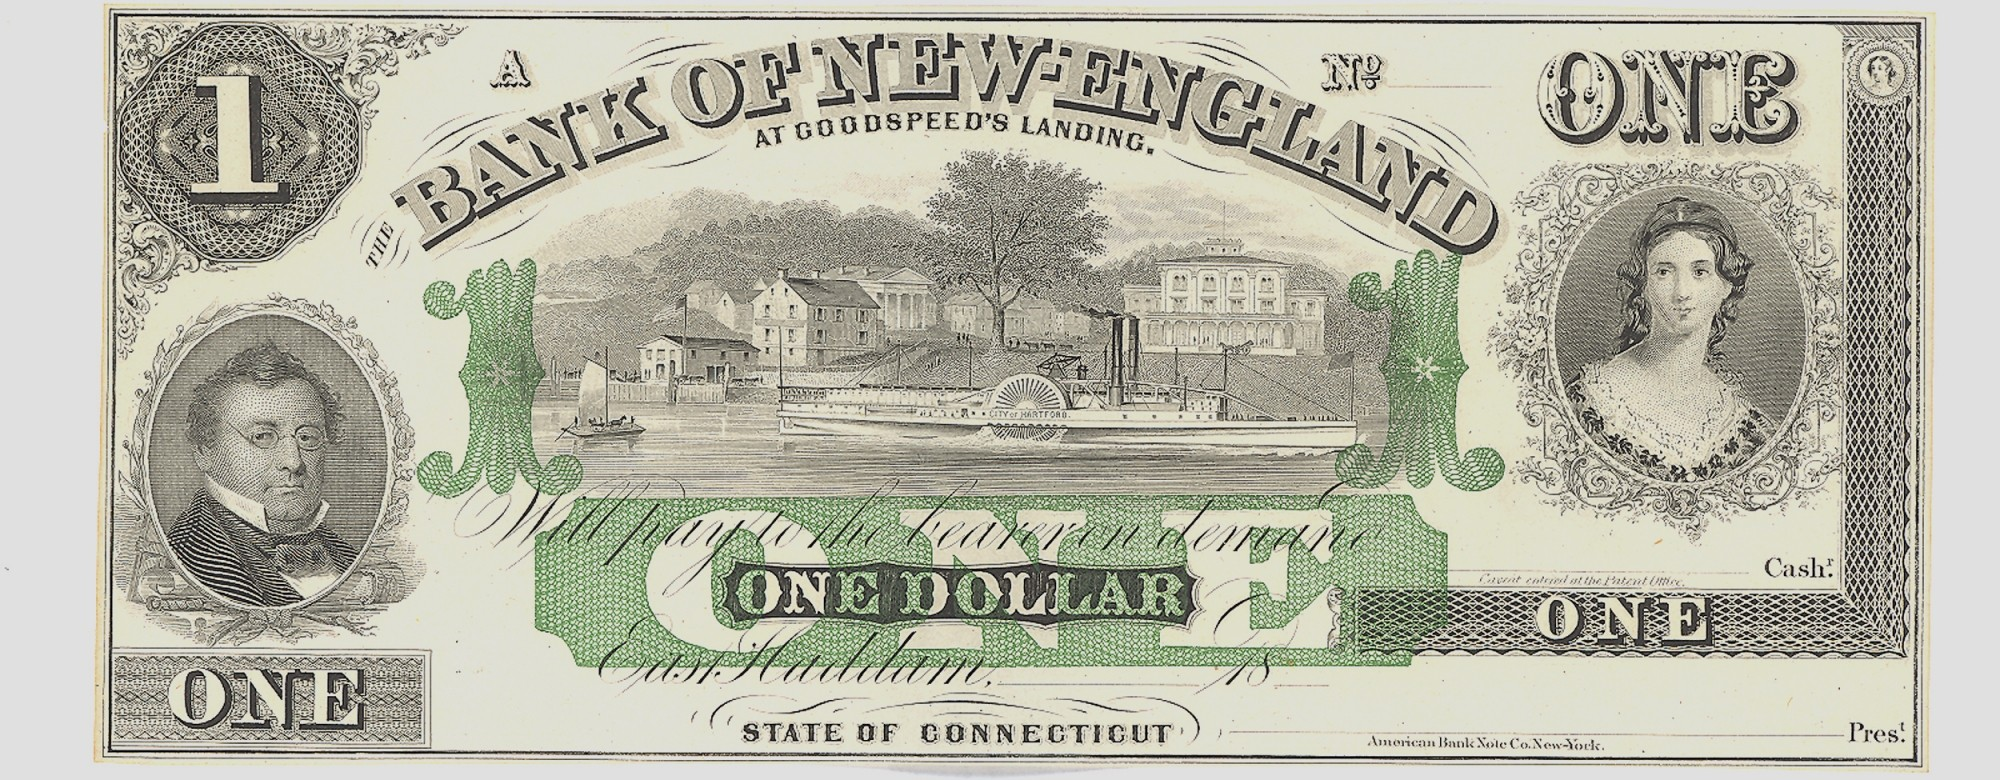 THE BANK OF NEW ENGLAND $1 NOTE